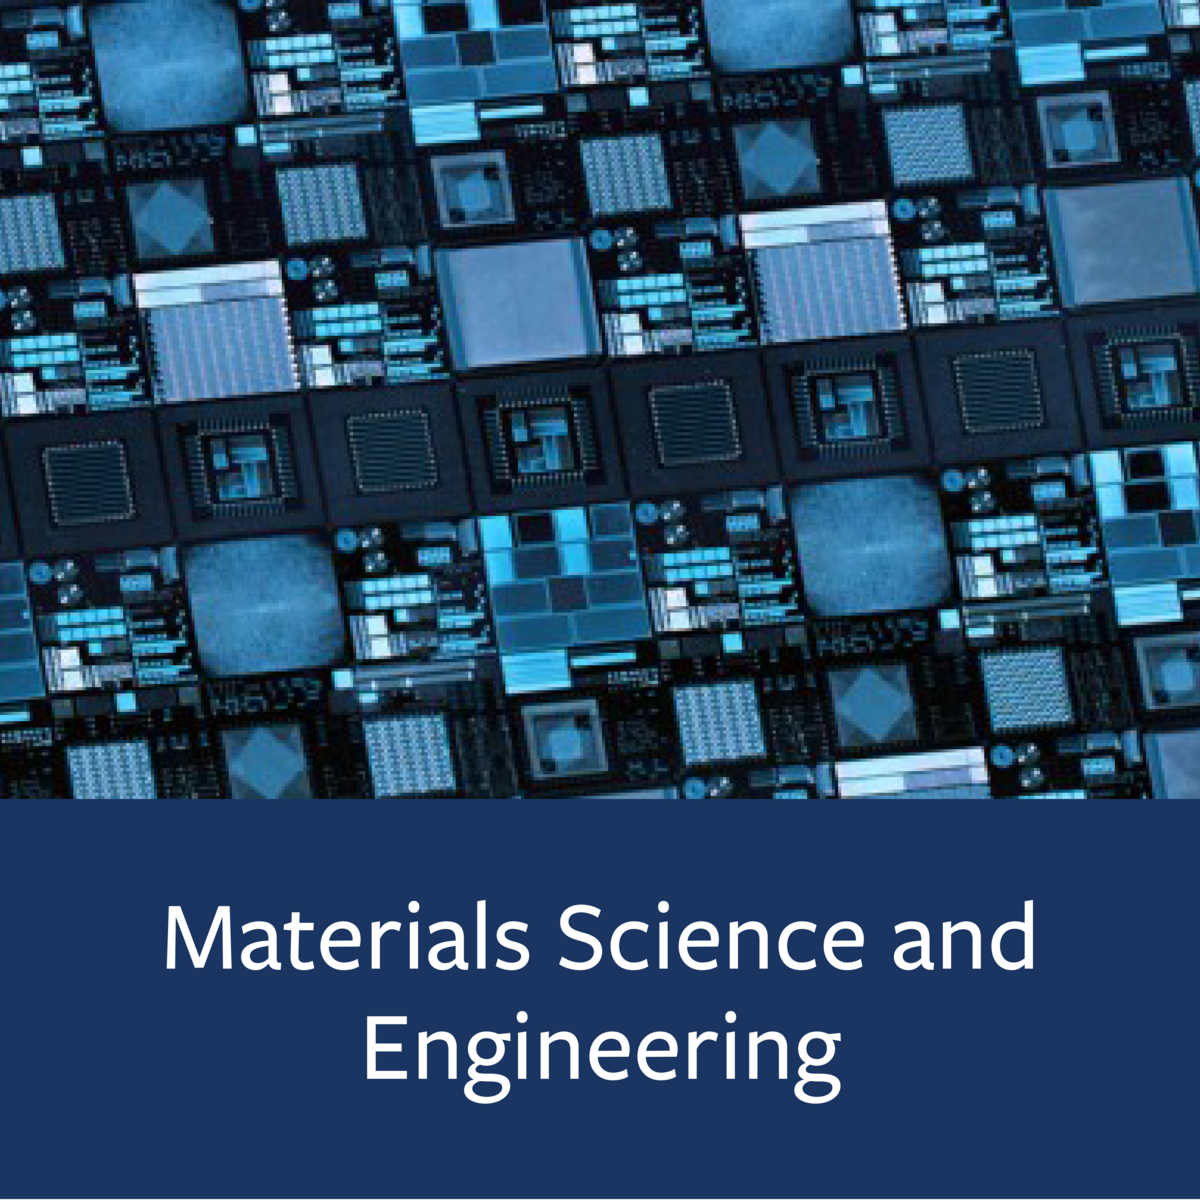 Materials Science and Engineering Major Map